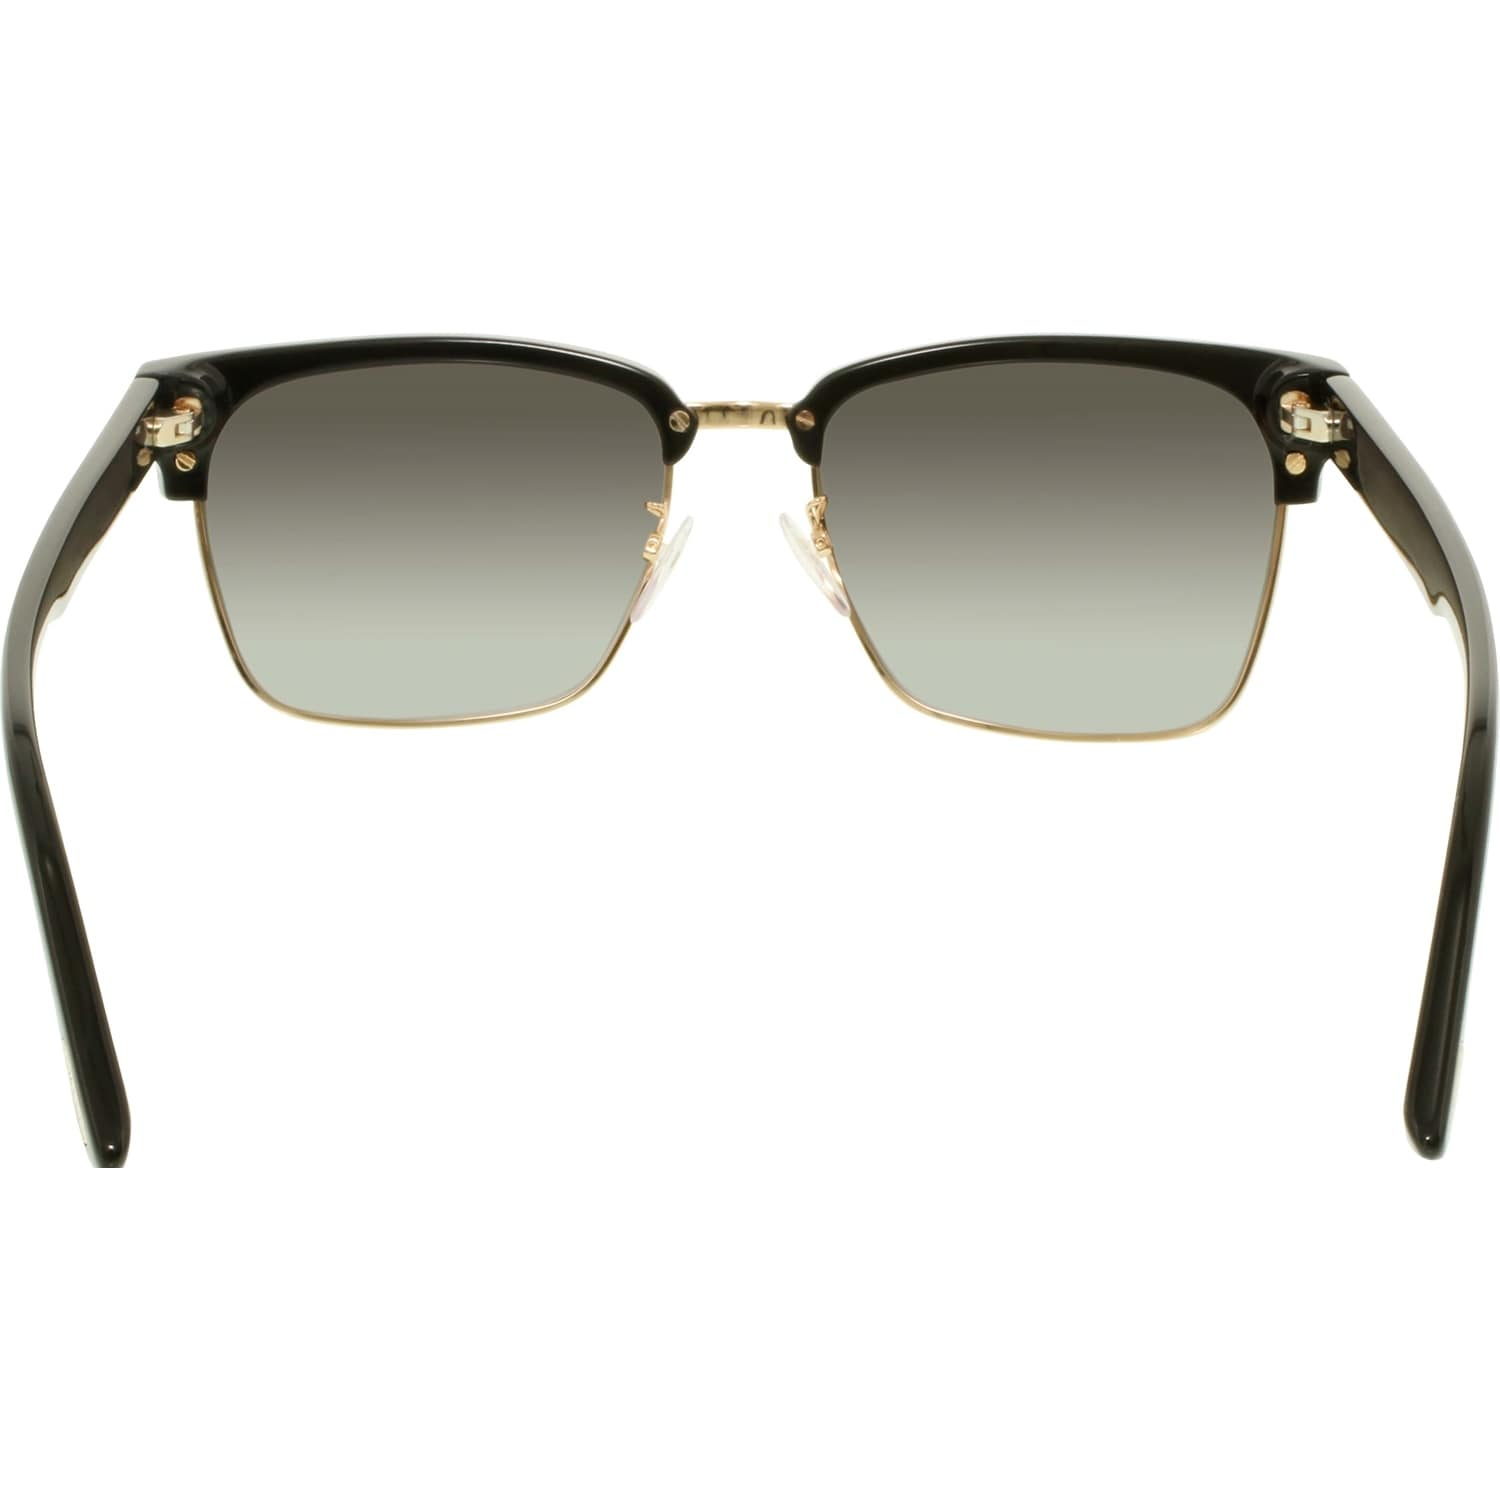 9bc2b3b4a1 Shop Tom Ford Men s Polarized FT0367-01D-57 Black Square Sunglasses - Free  Shipping Today - Overstock - 18901237